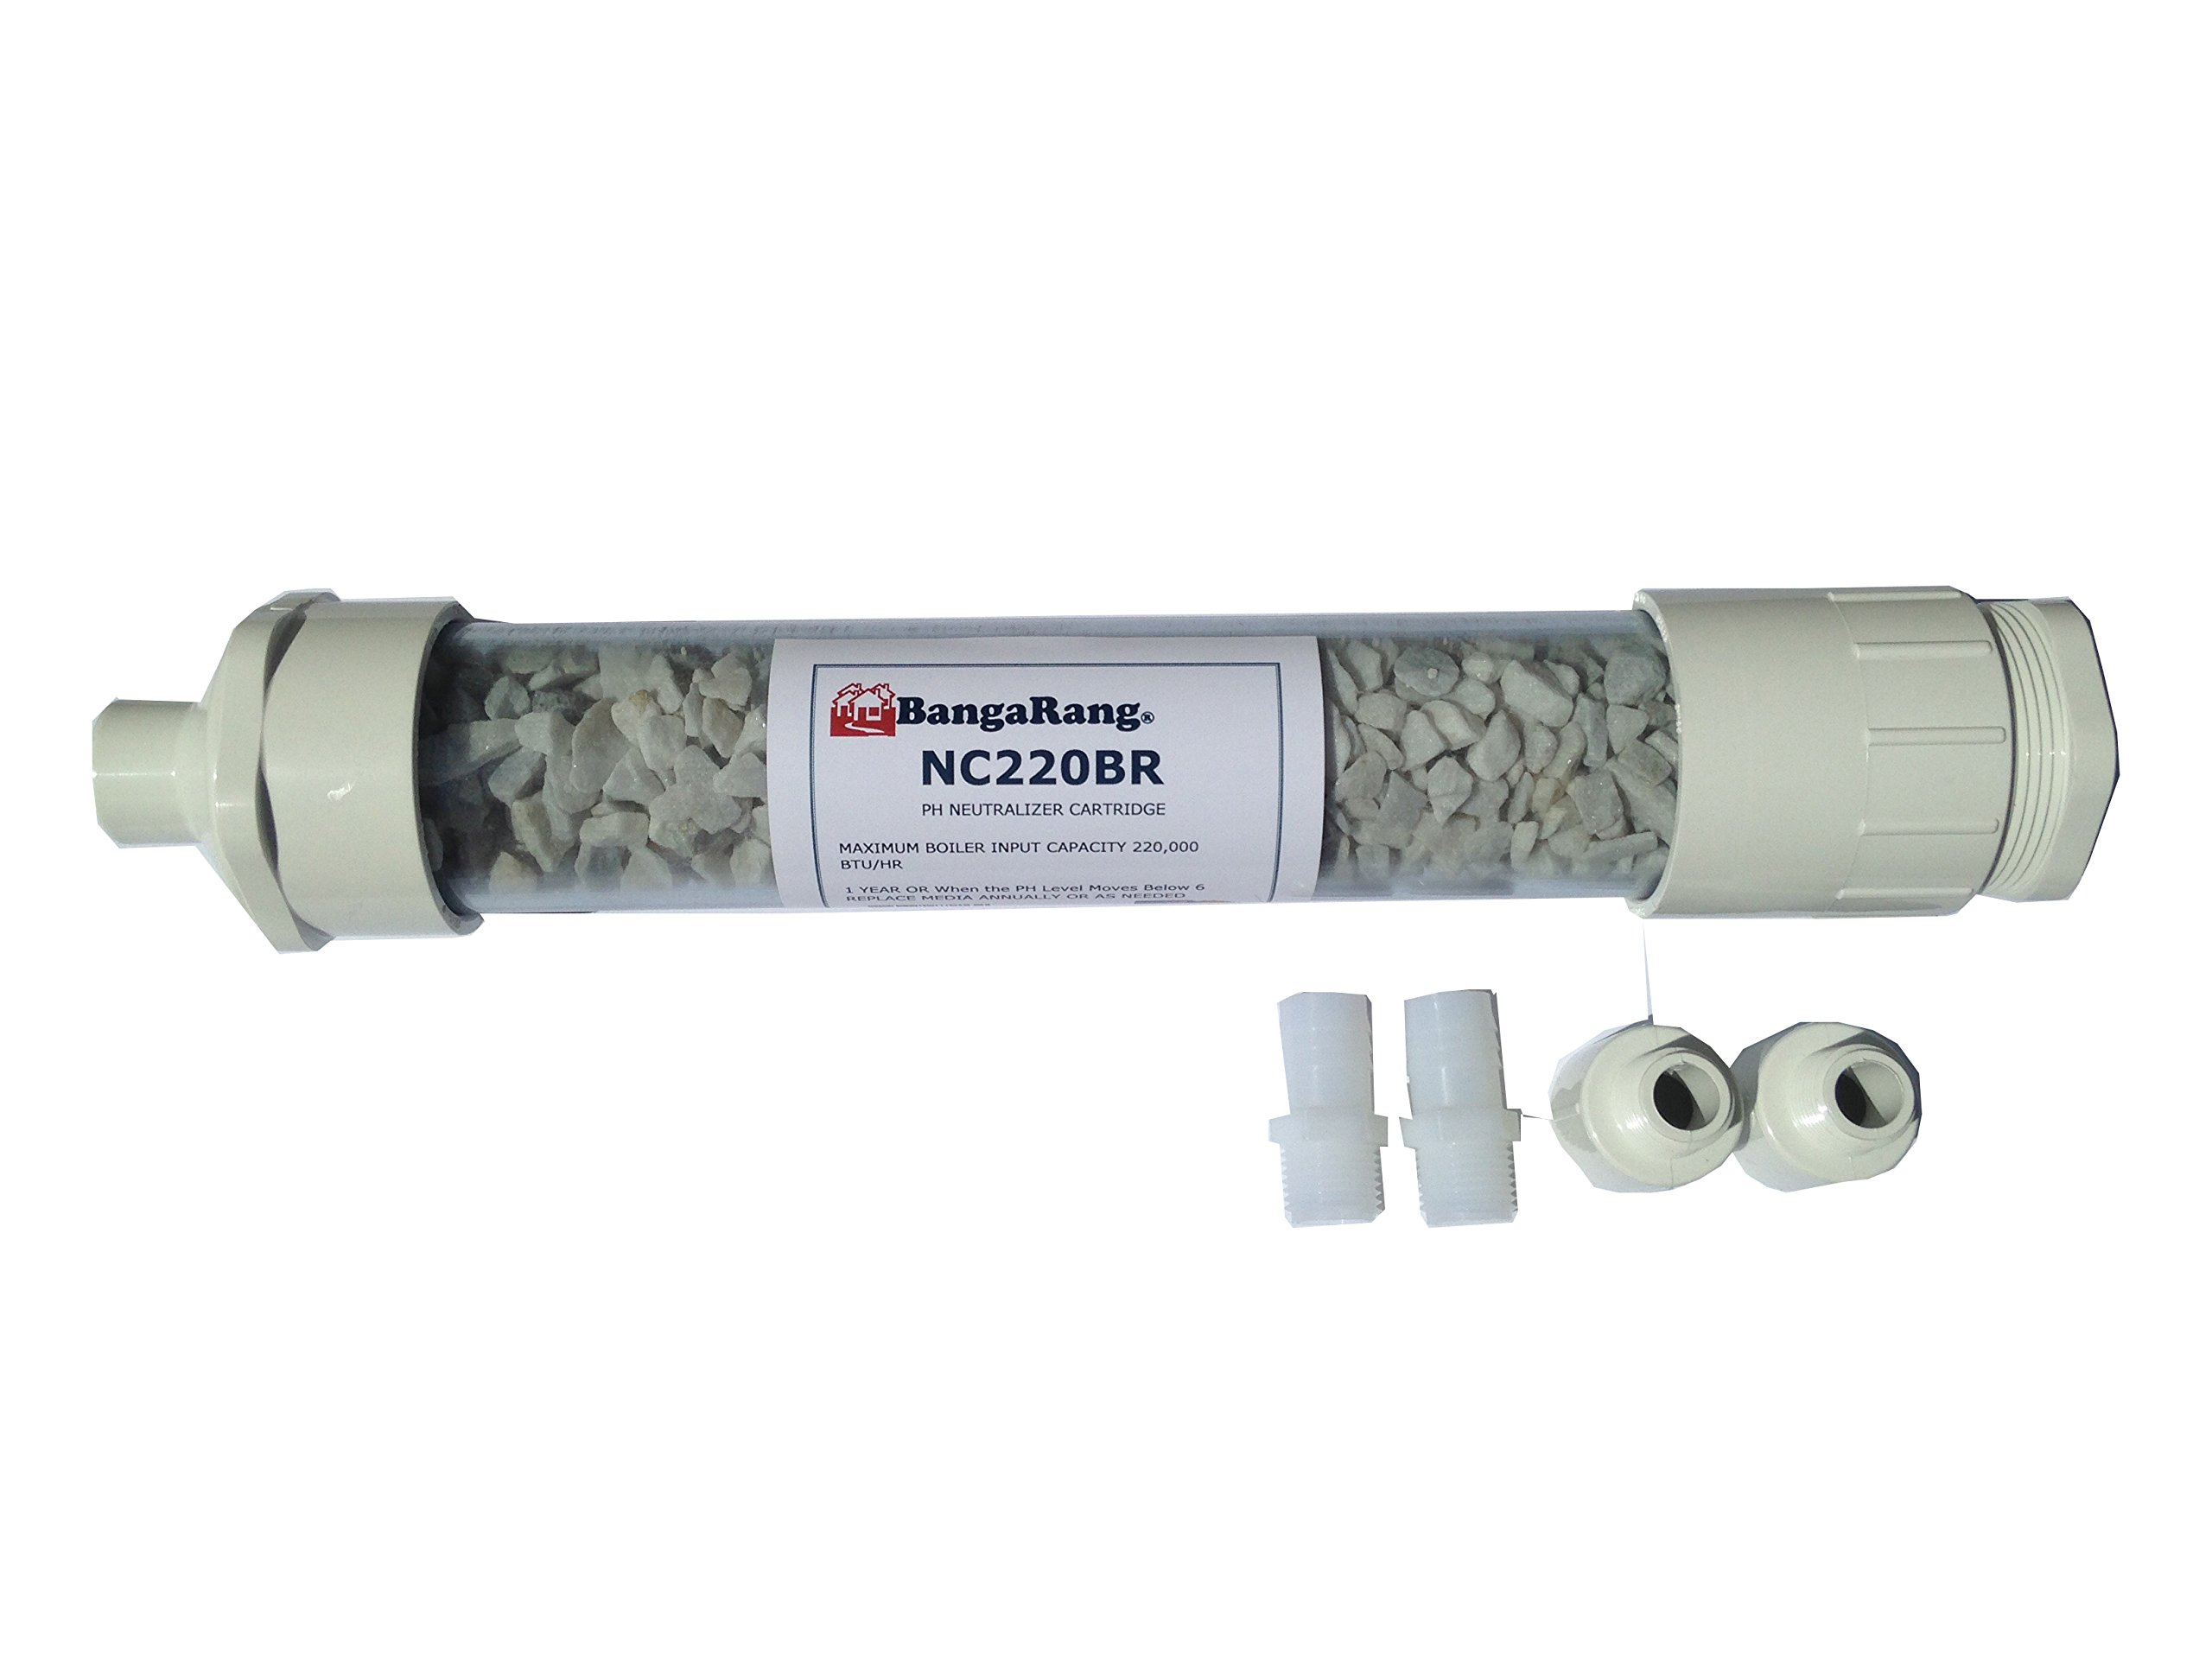 BangaRang Condensate Neutralizer 220,000 btu 15''x2.5'' Fittings 3/4''